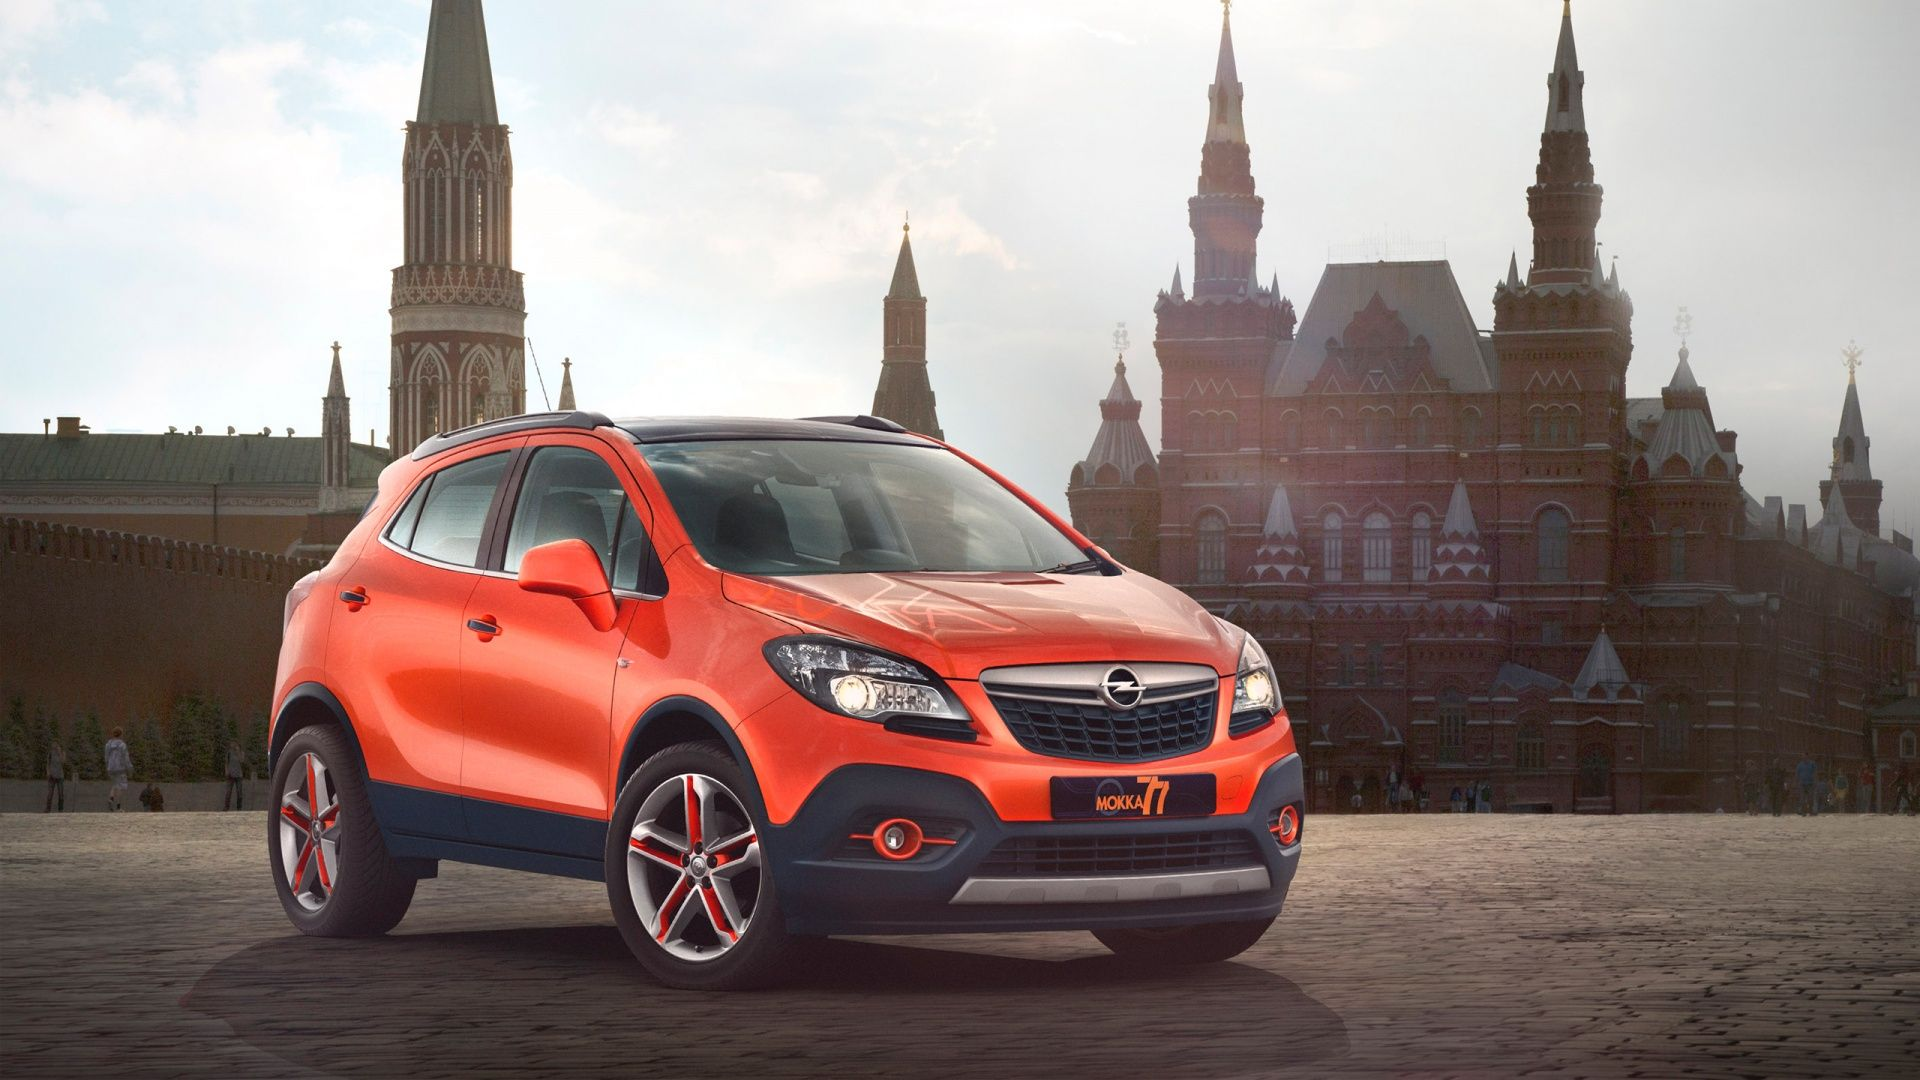 Red Opel Mokka Moscow Edition 2015 With Images Opel Mokka